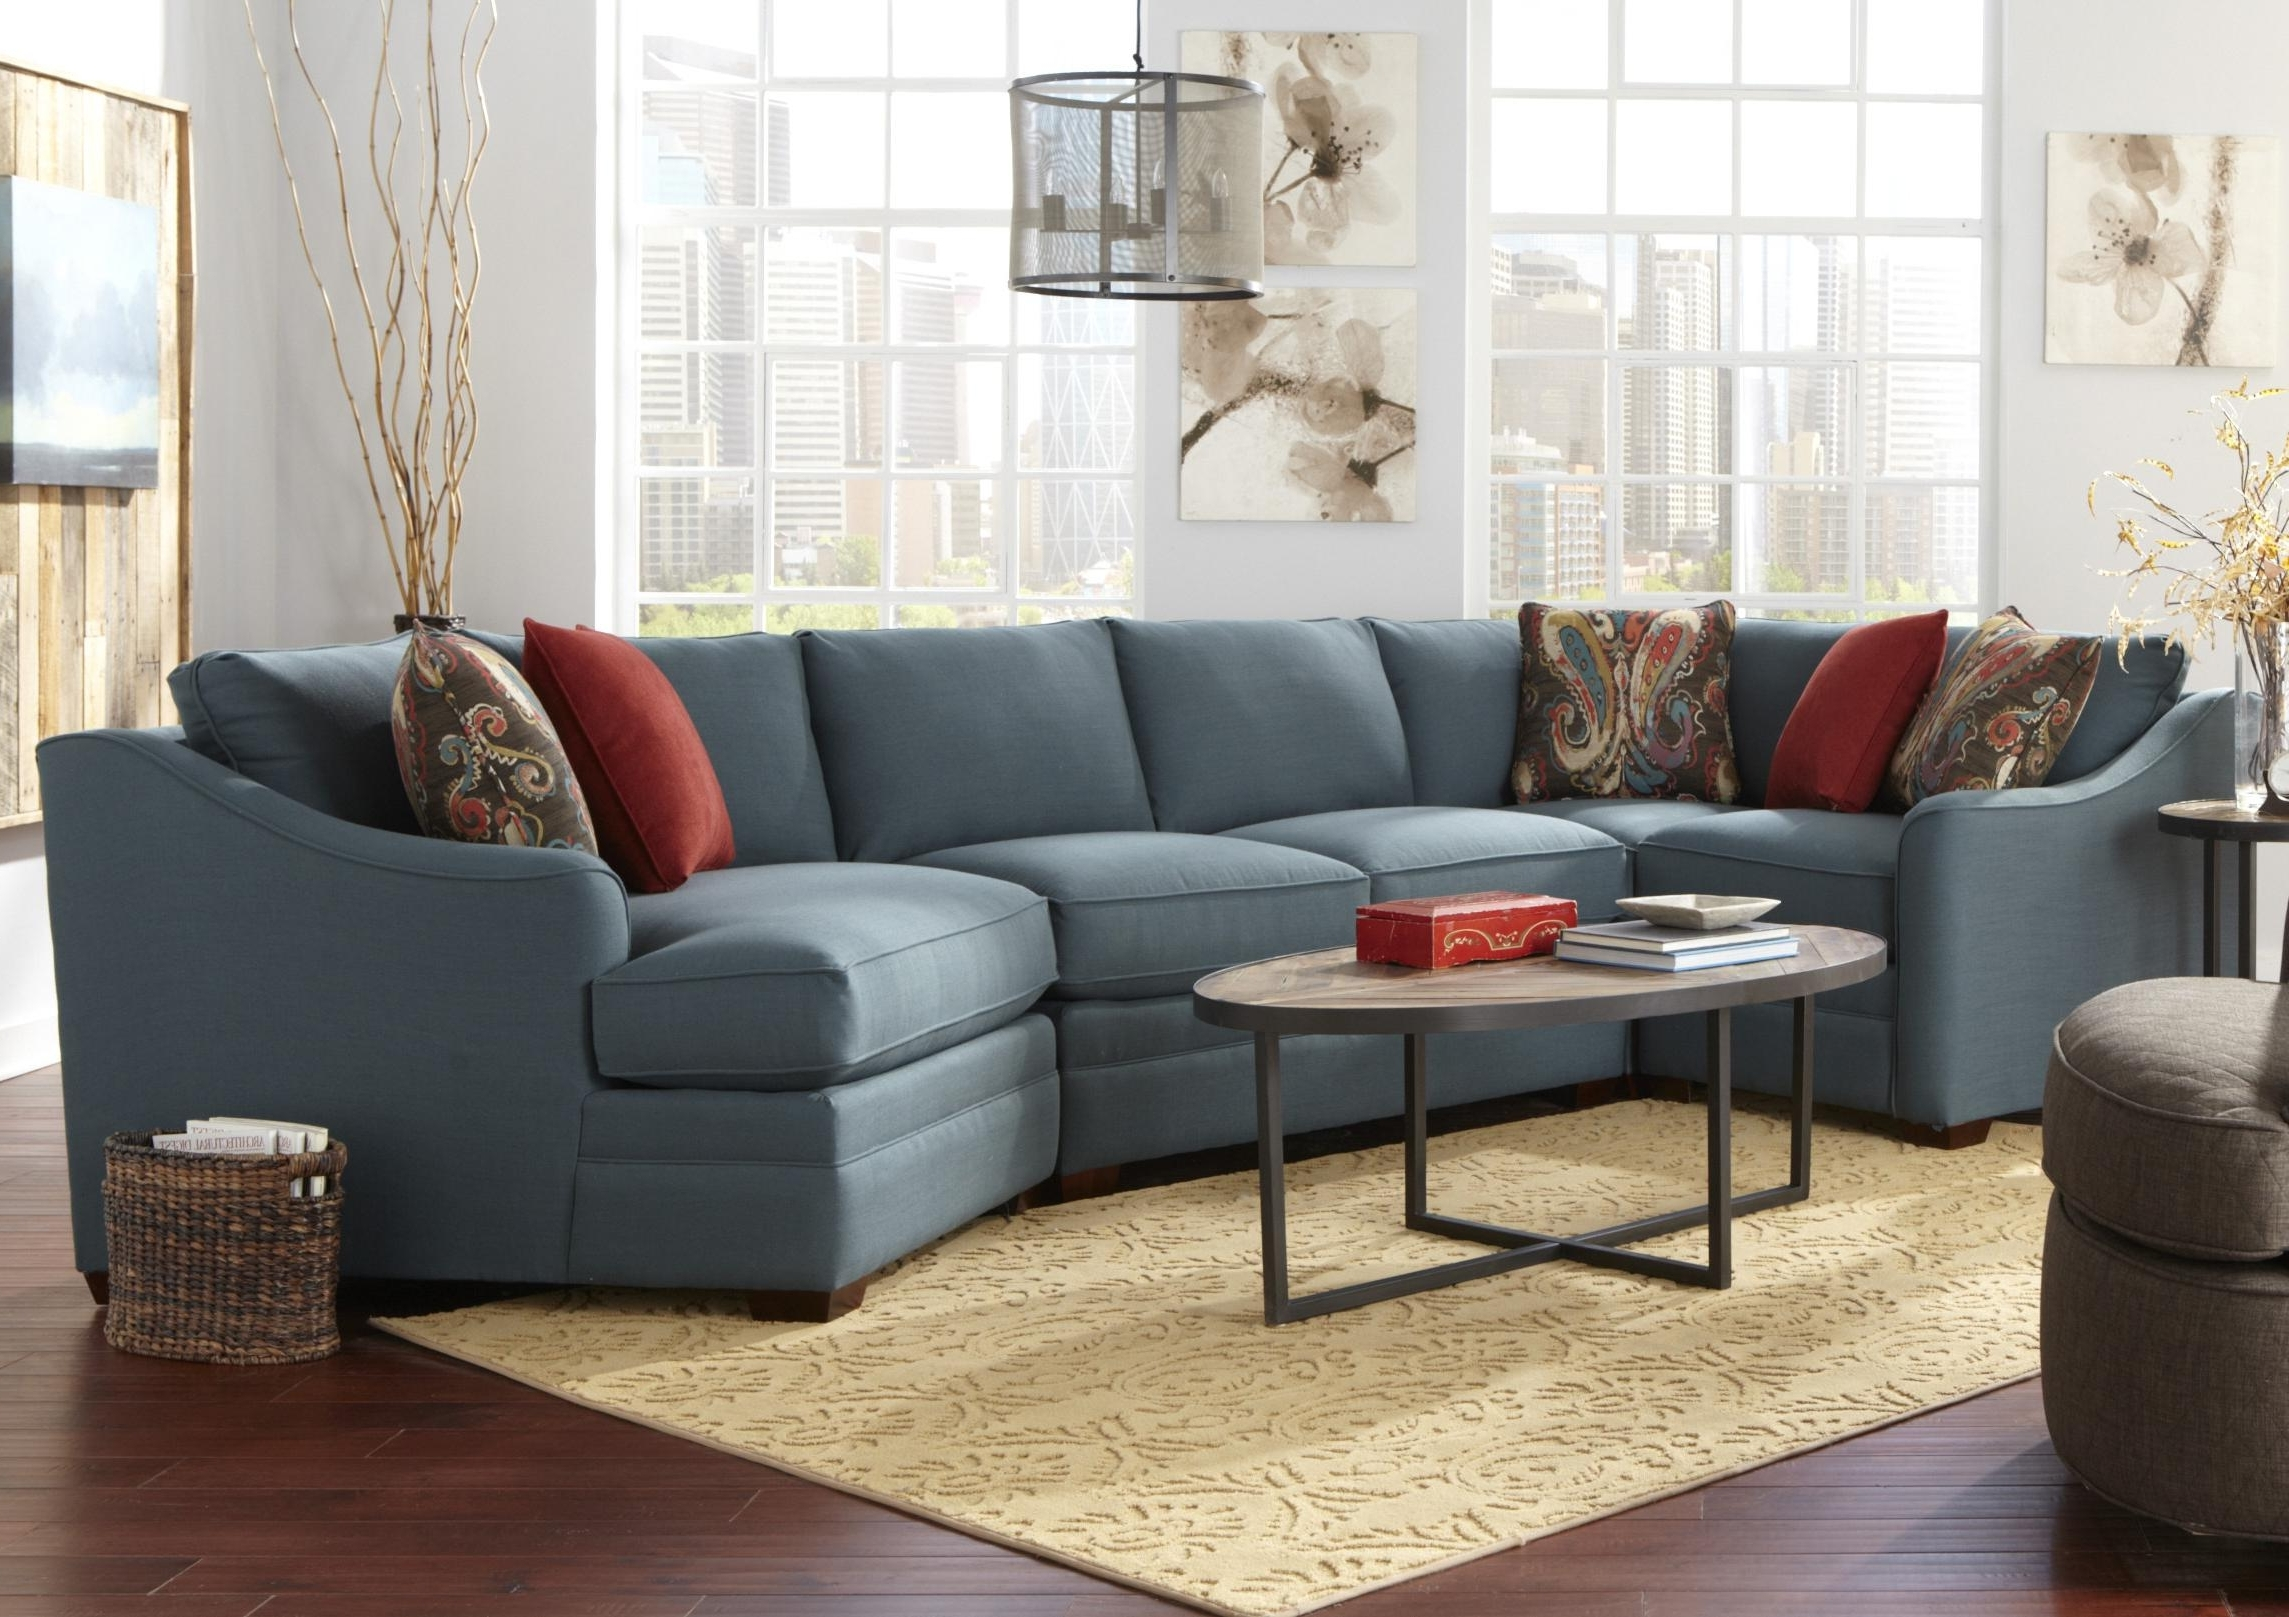 Harrisburg Pa Sectional Sofas For 2017 Four Piece <B>Customizable</b> Sectional Sofa With Raf Cuddler (View 6 of 15)